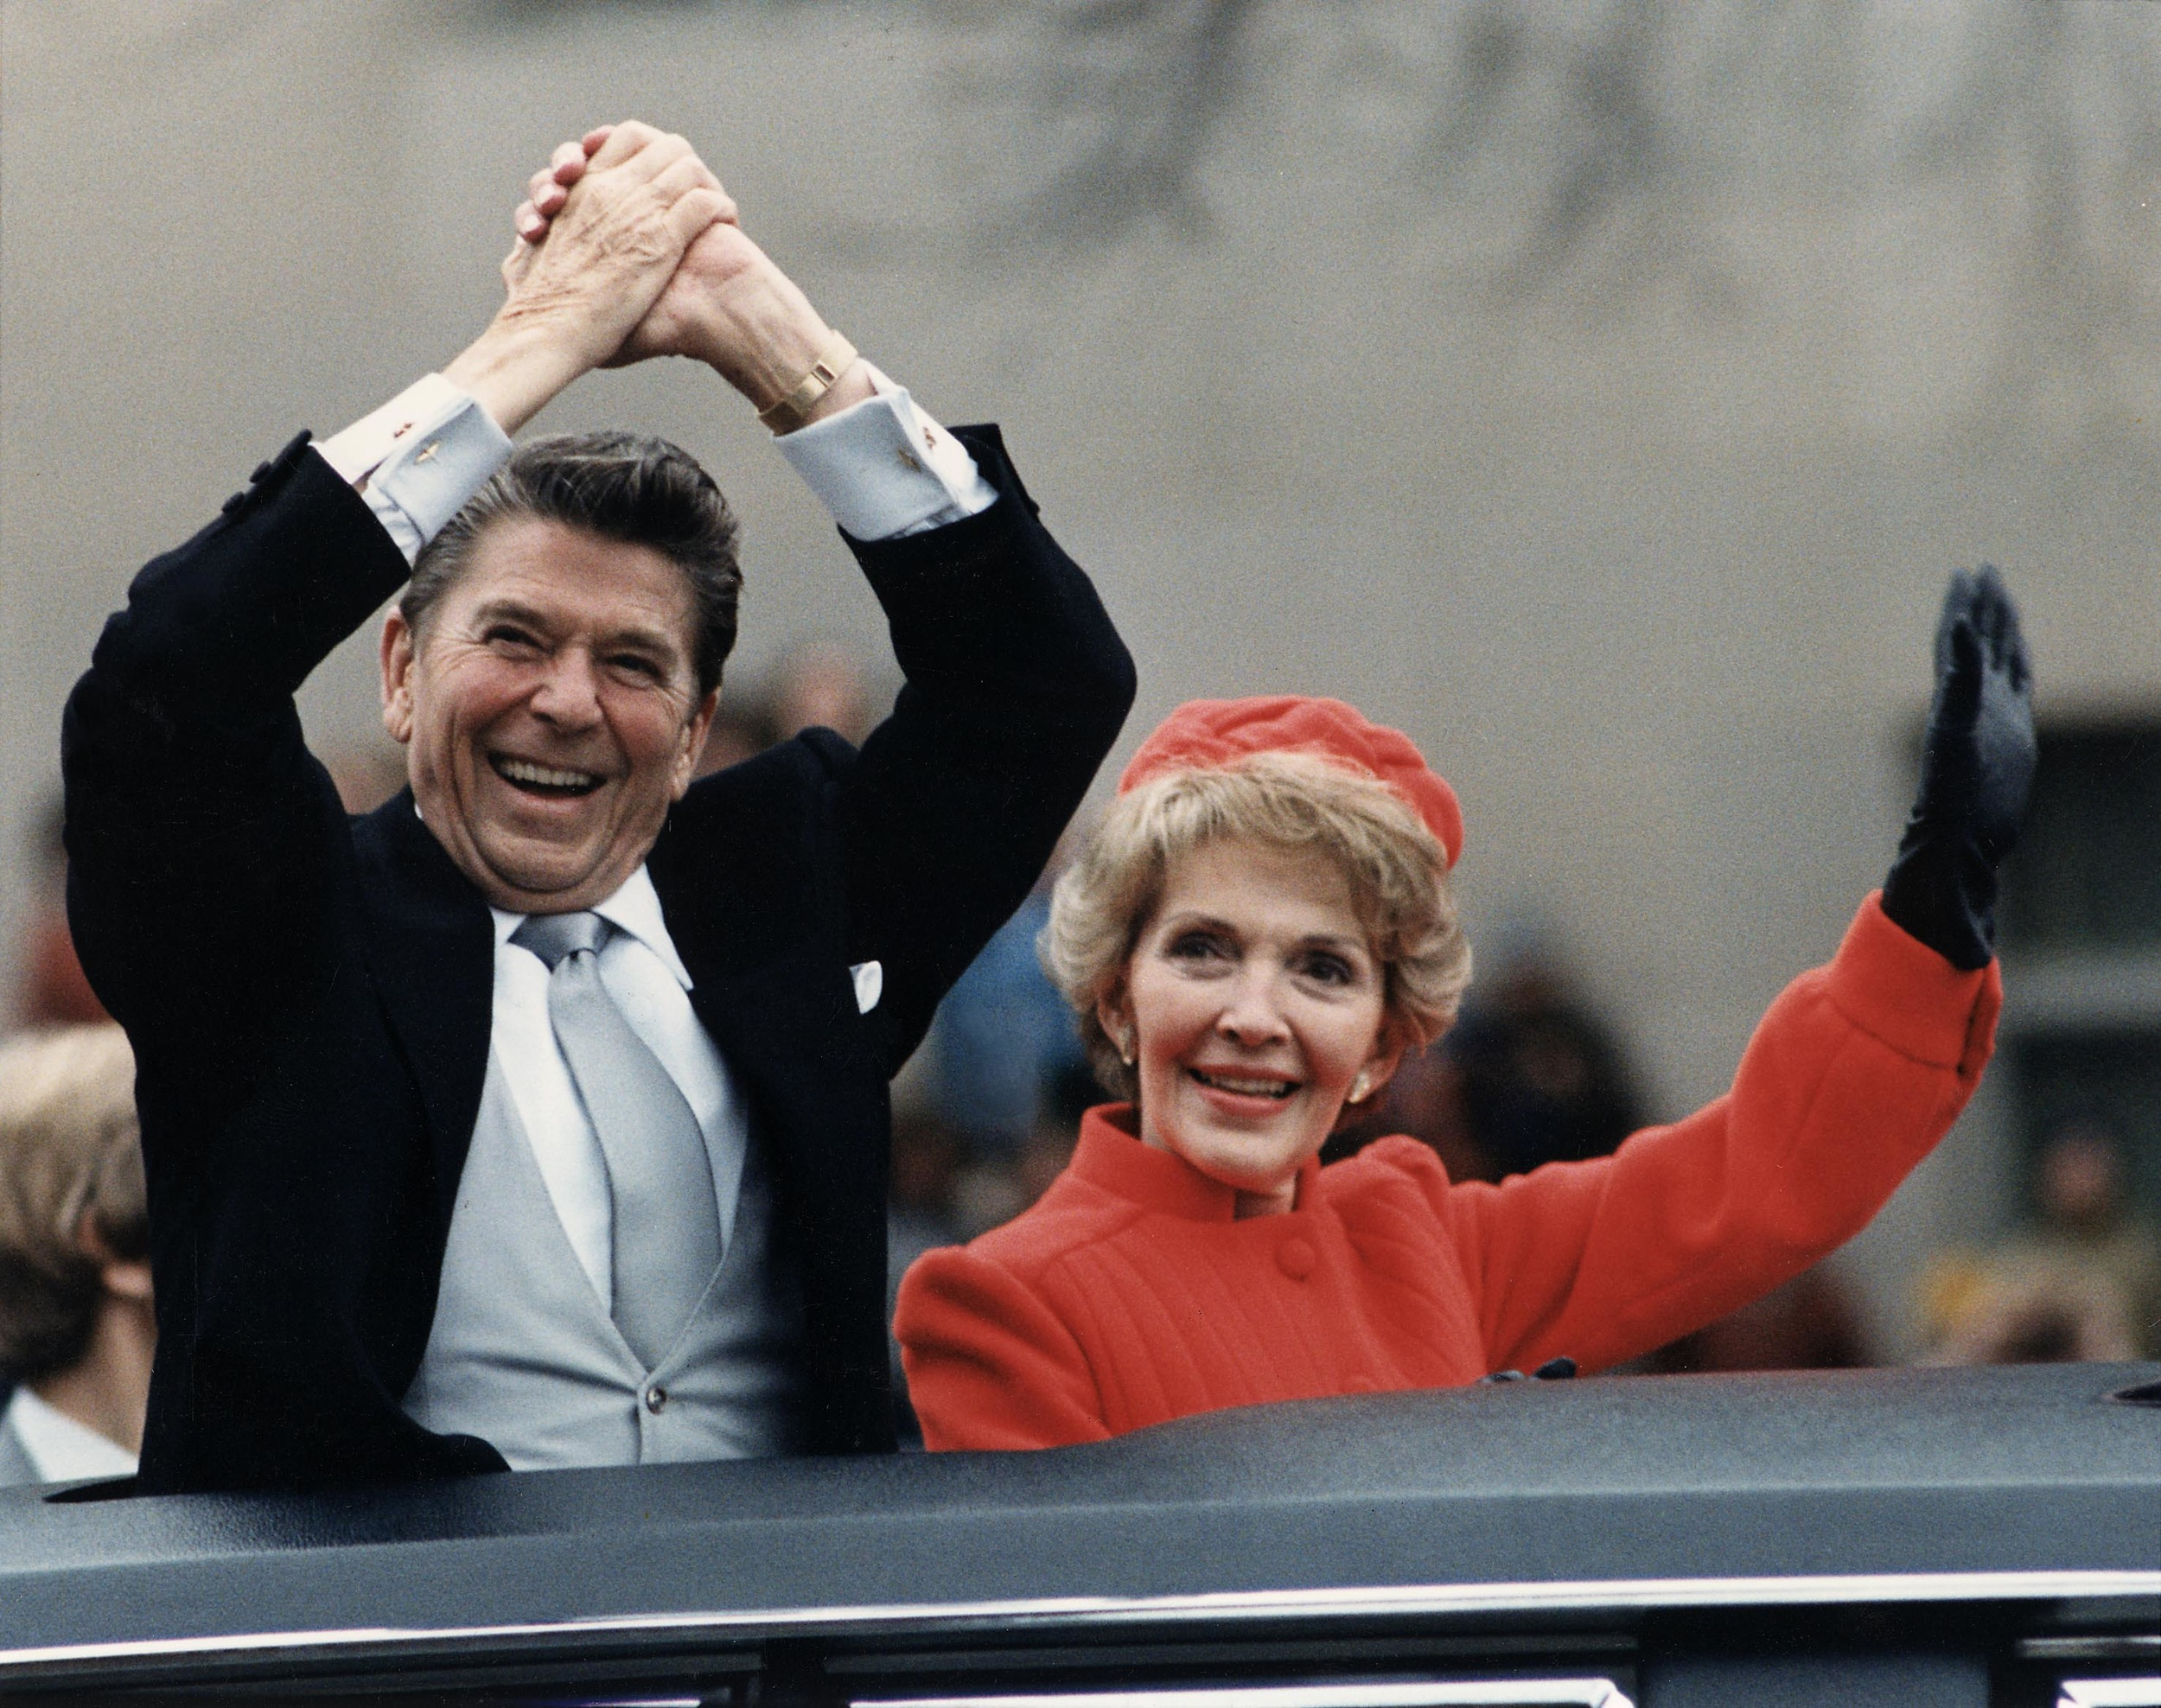 The_Reagans_waving_from_the_limousine_during_the_Inaugural_Parade_1981.jpg